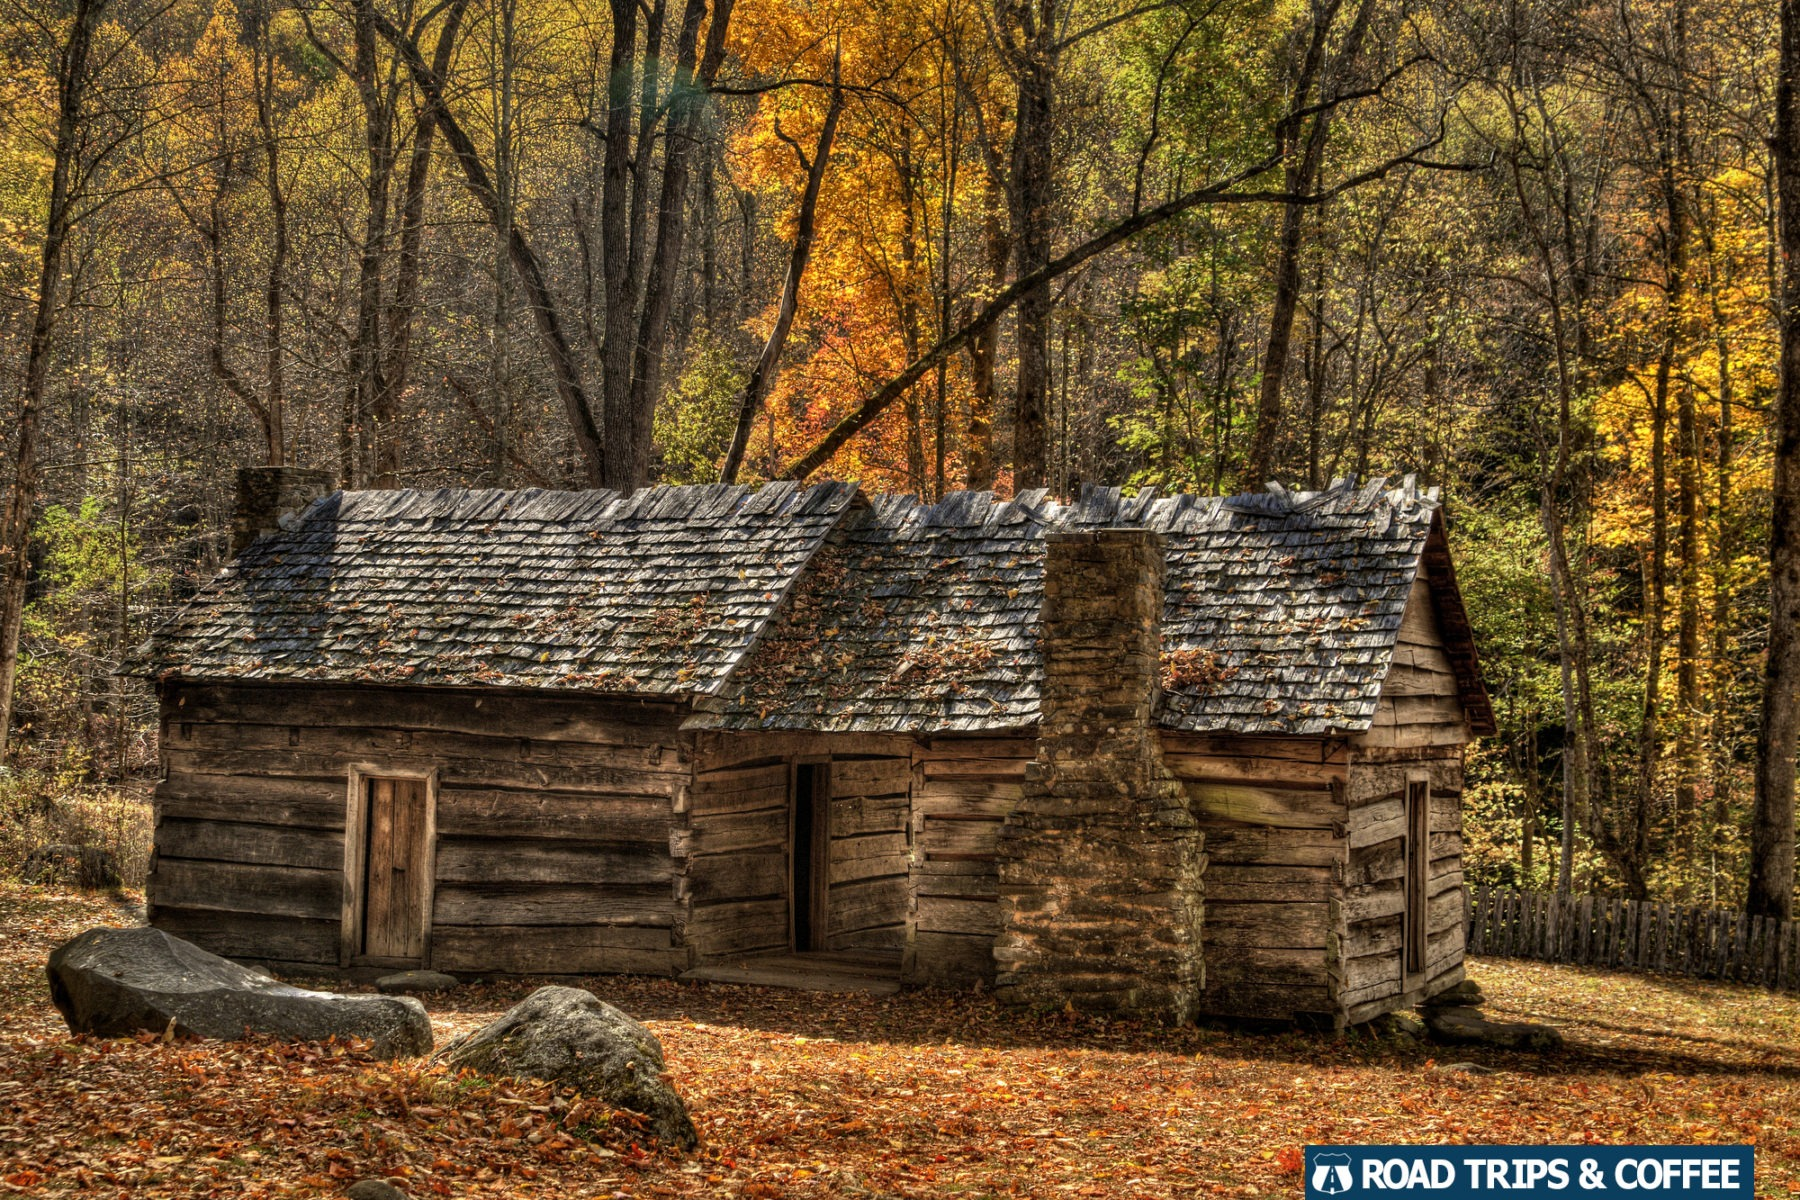 Vibrant fall colors surround a rustic cabin in the Great Smoky Mountains National Park